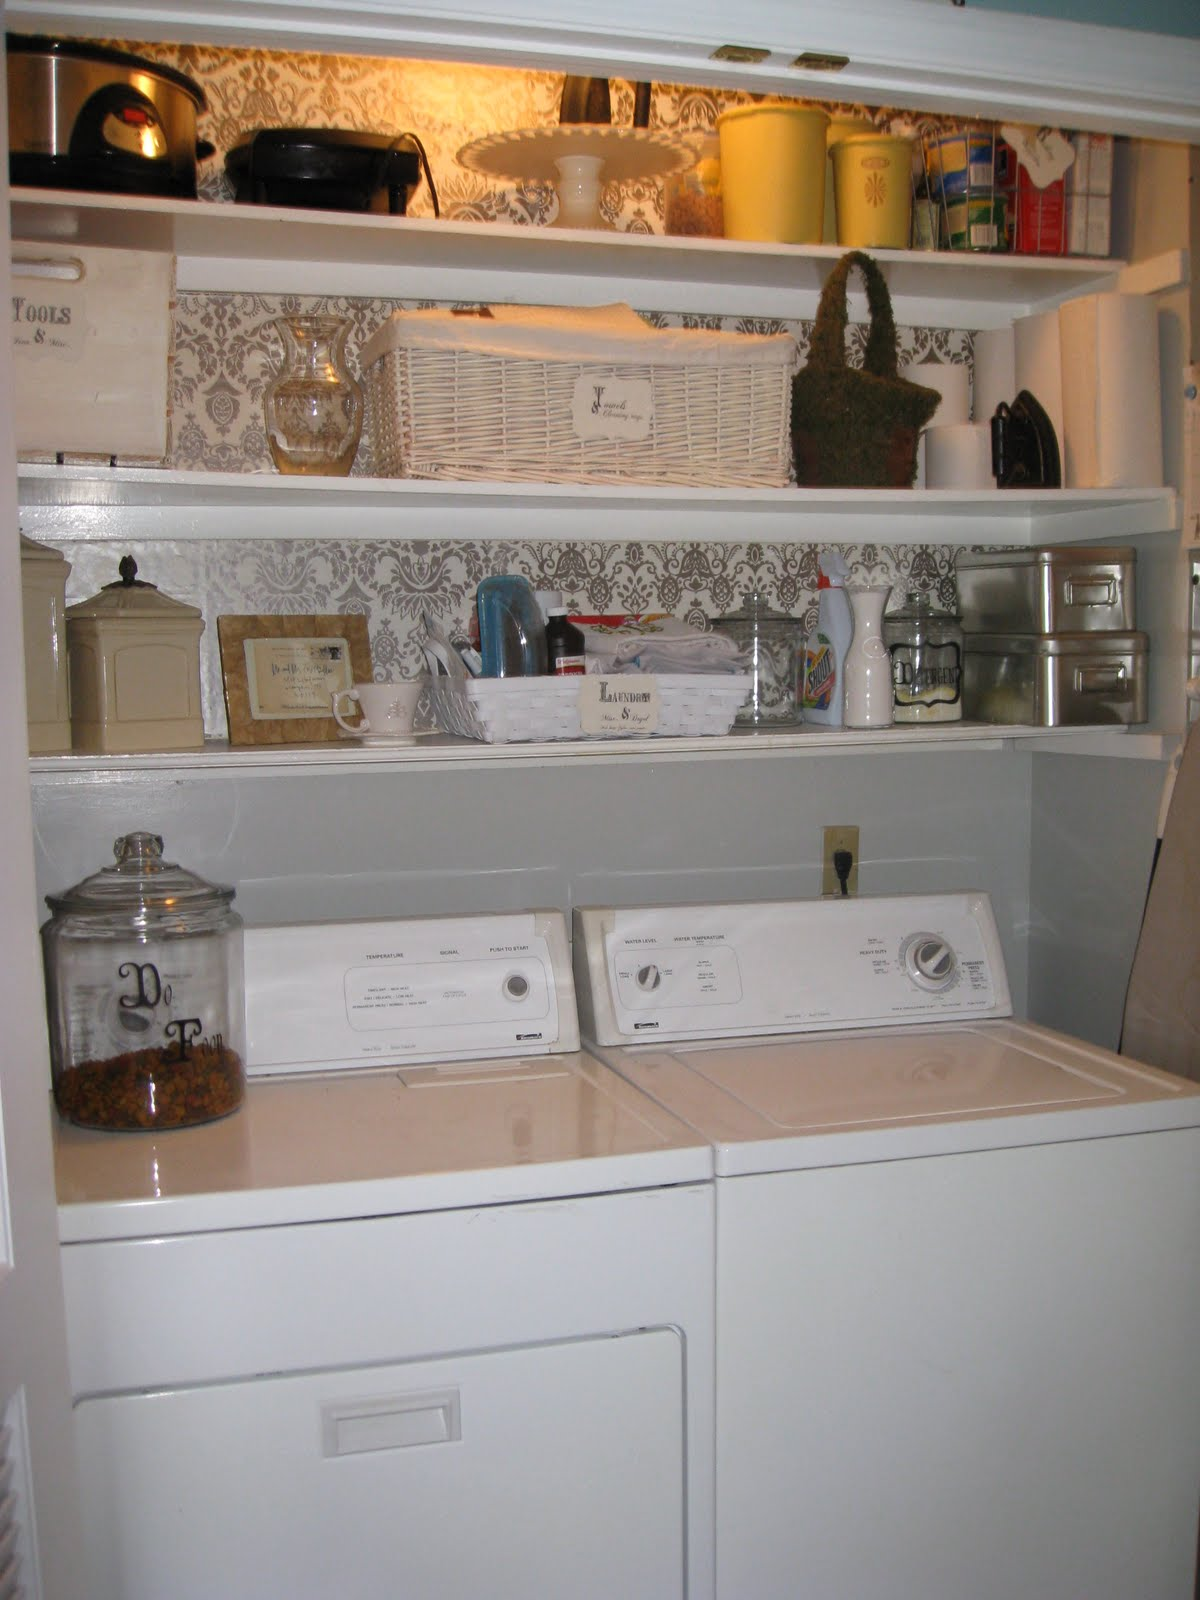 Laundry Room Shelving Ideas for Small Spaces You Need to See HomesFeed